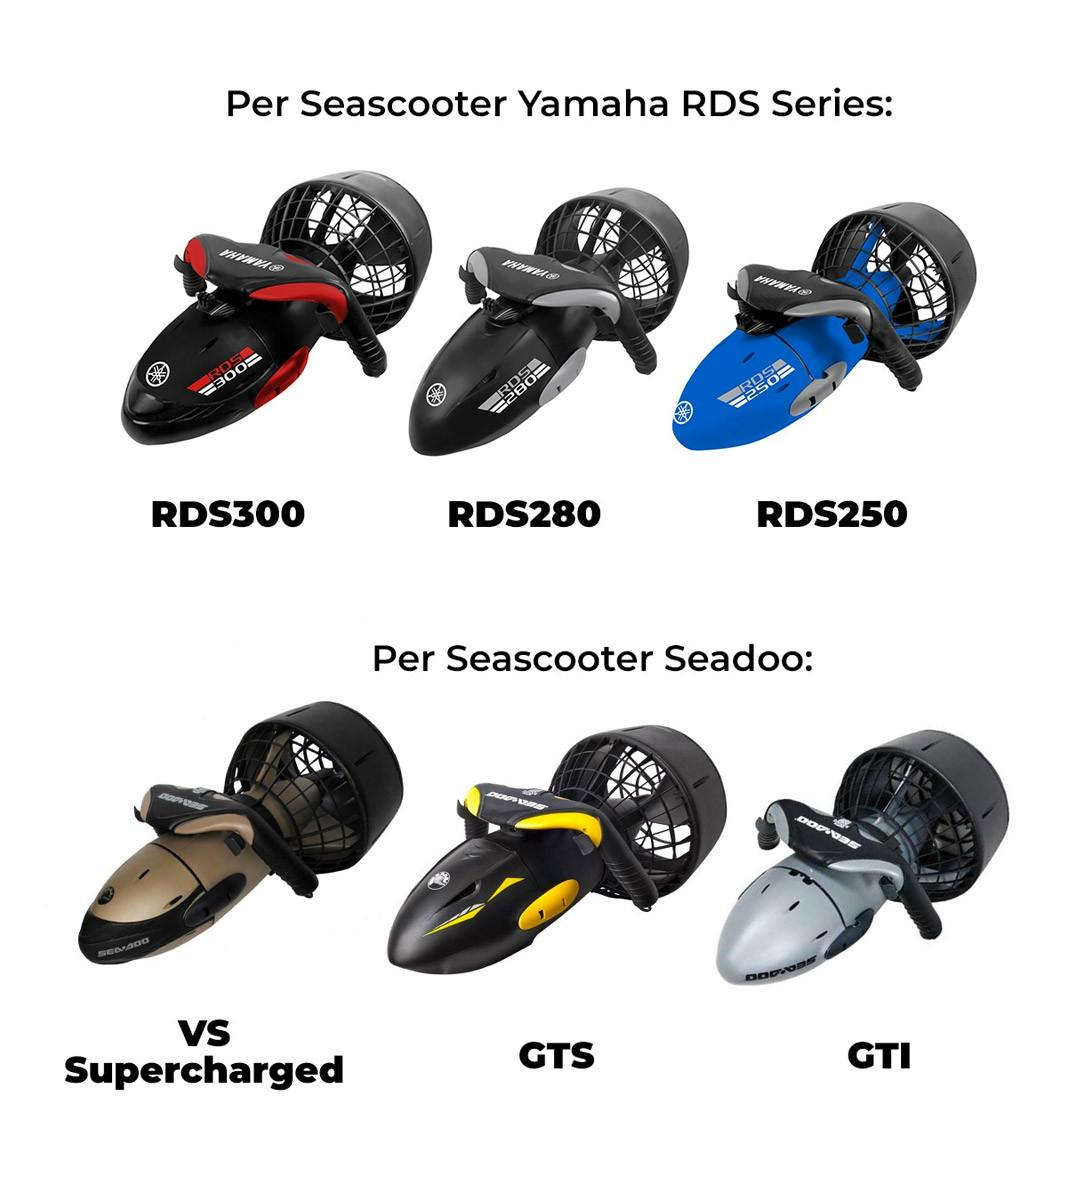 Caricabatterie per Seascooter Acqua Scooter Yamaha Serie RDS e Seadoo